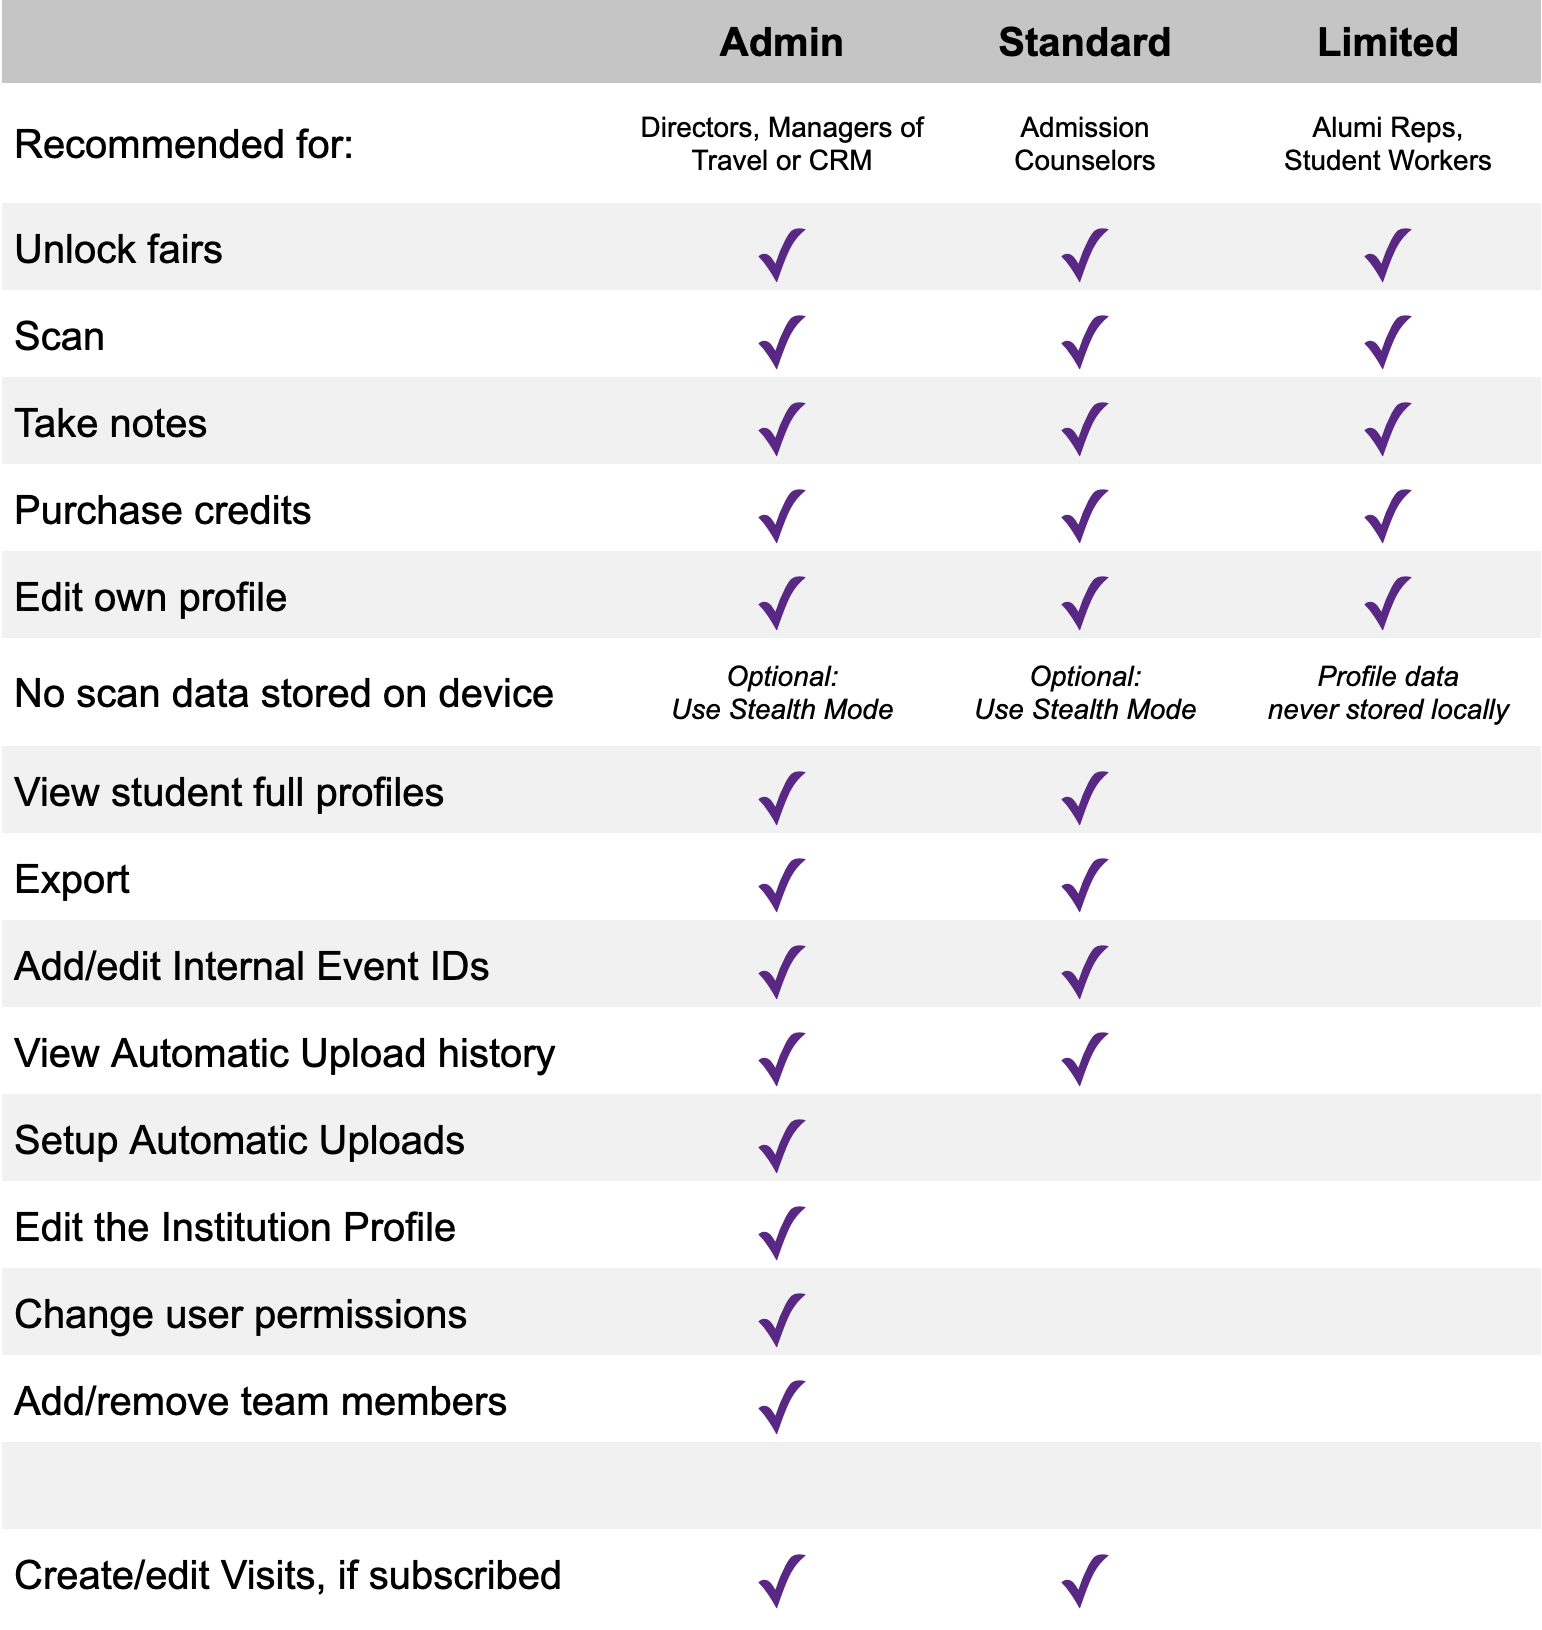 Overview chart of user permissions